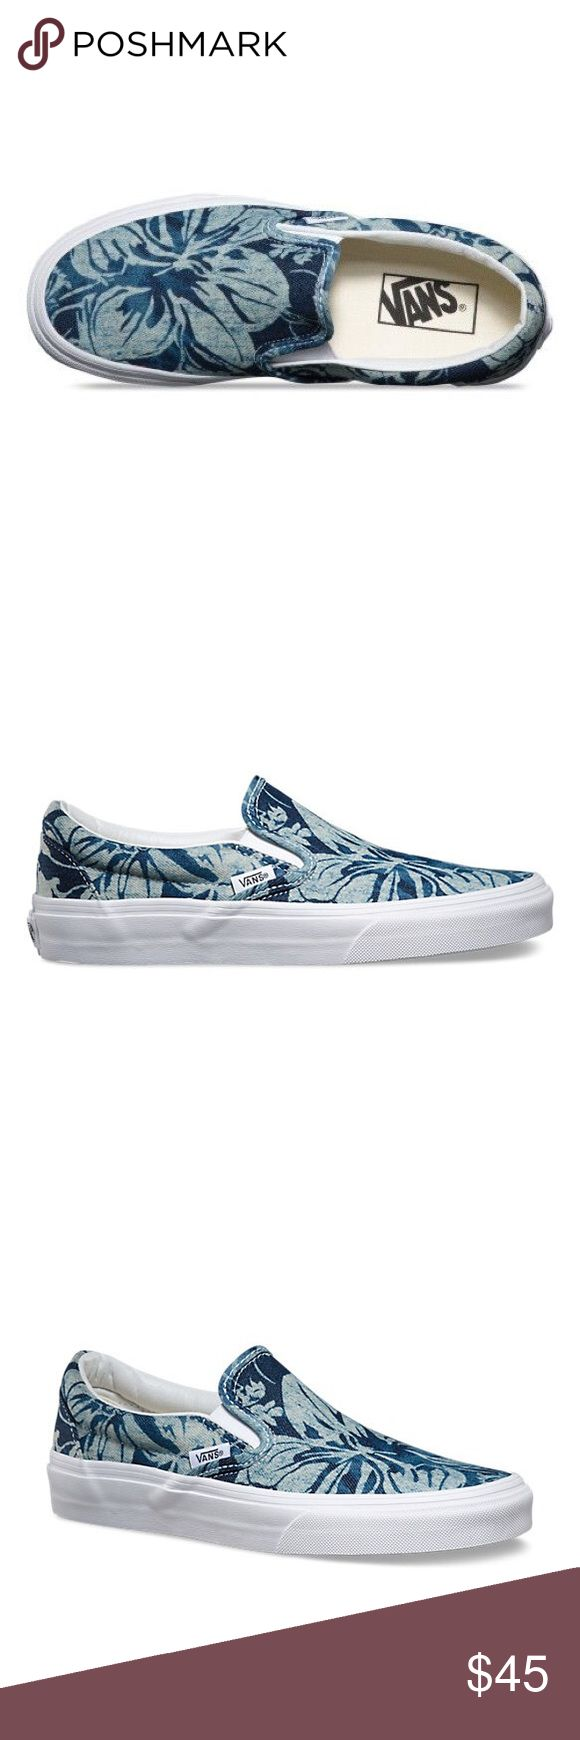 Indigo Tropical Slip-on Vans NWOT they're Super cute! (6.5 in Women's) Vans Shoes Sneakers